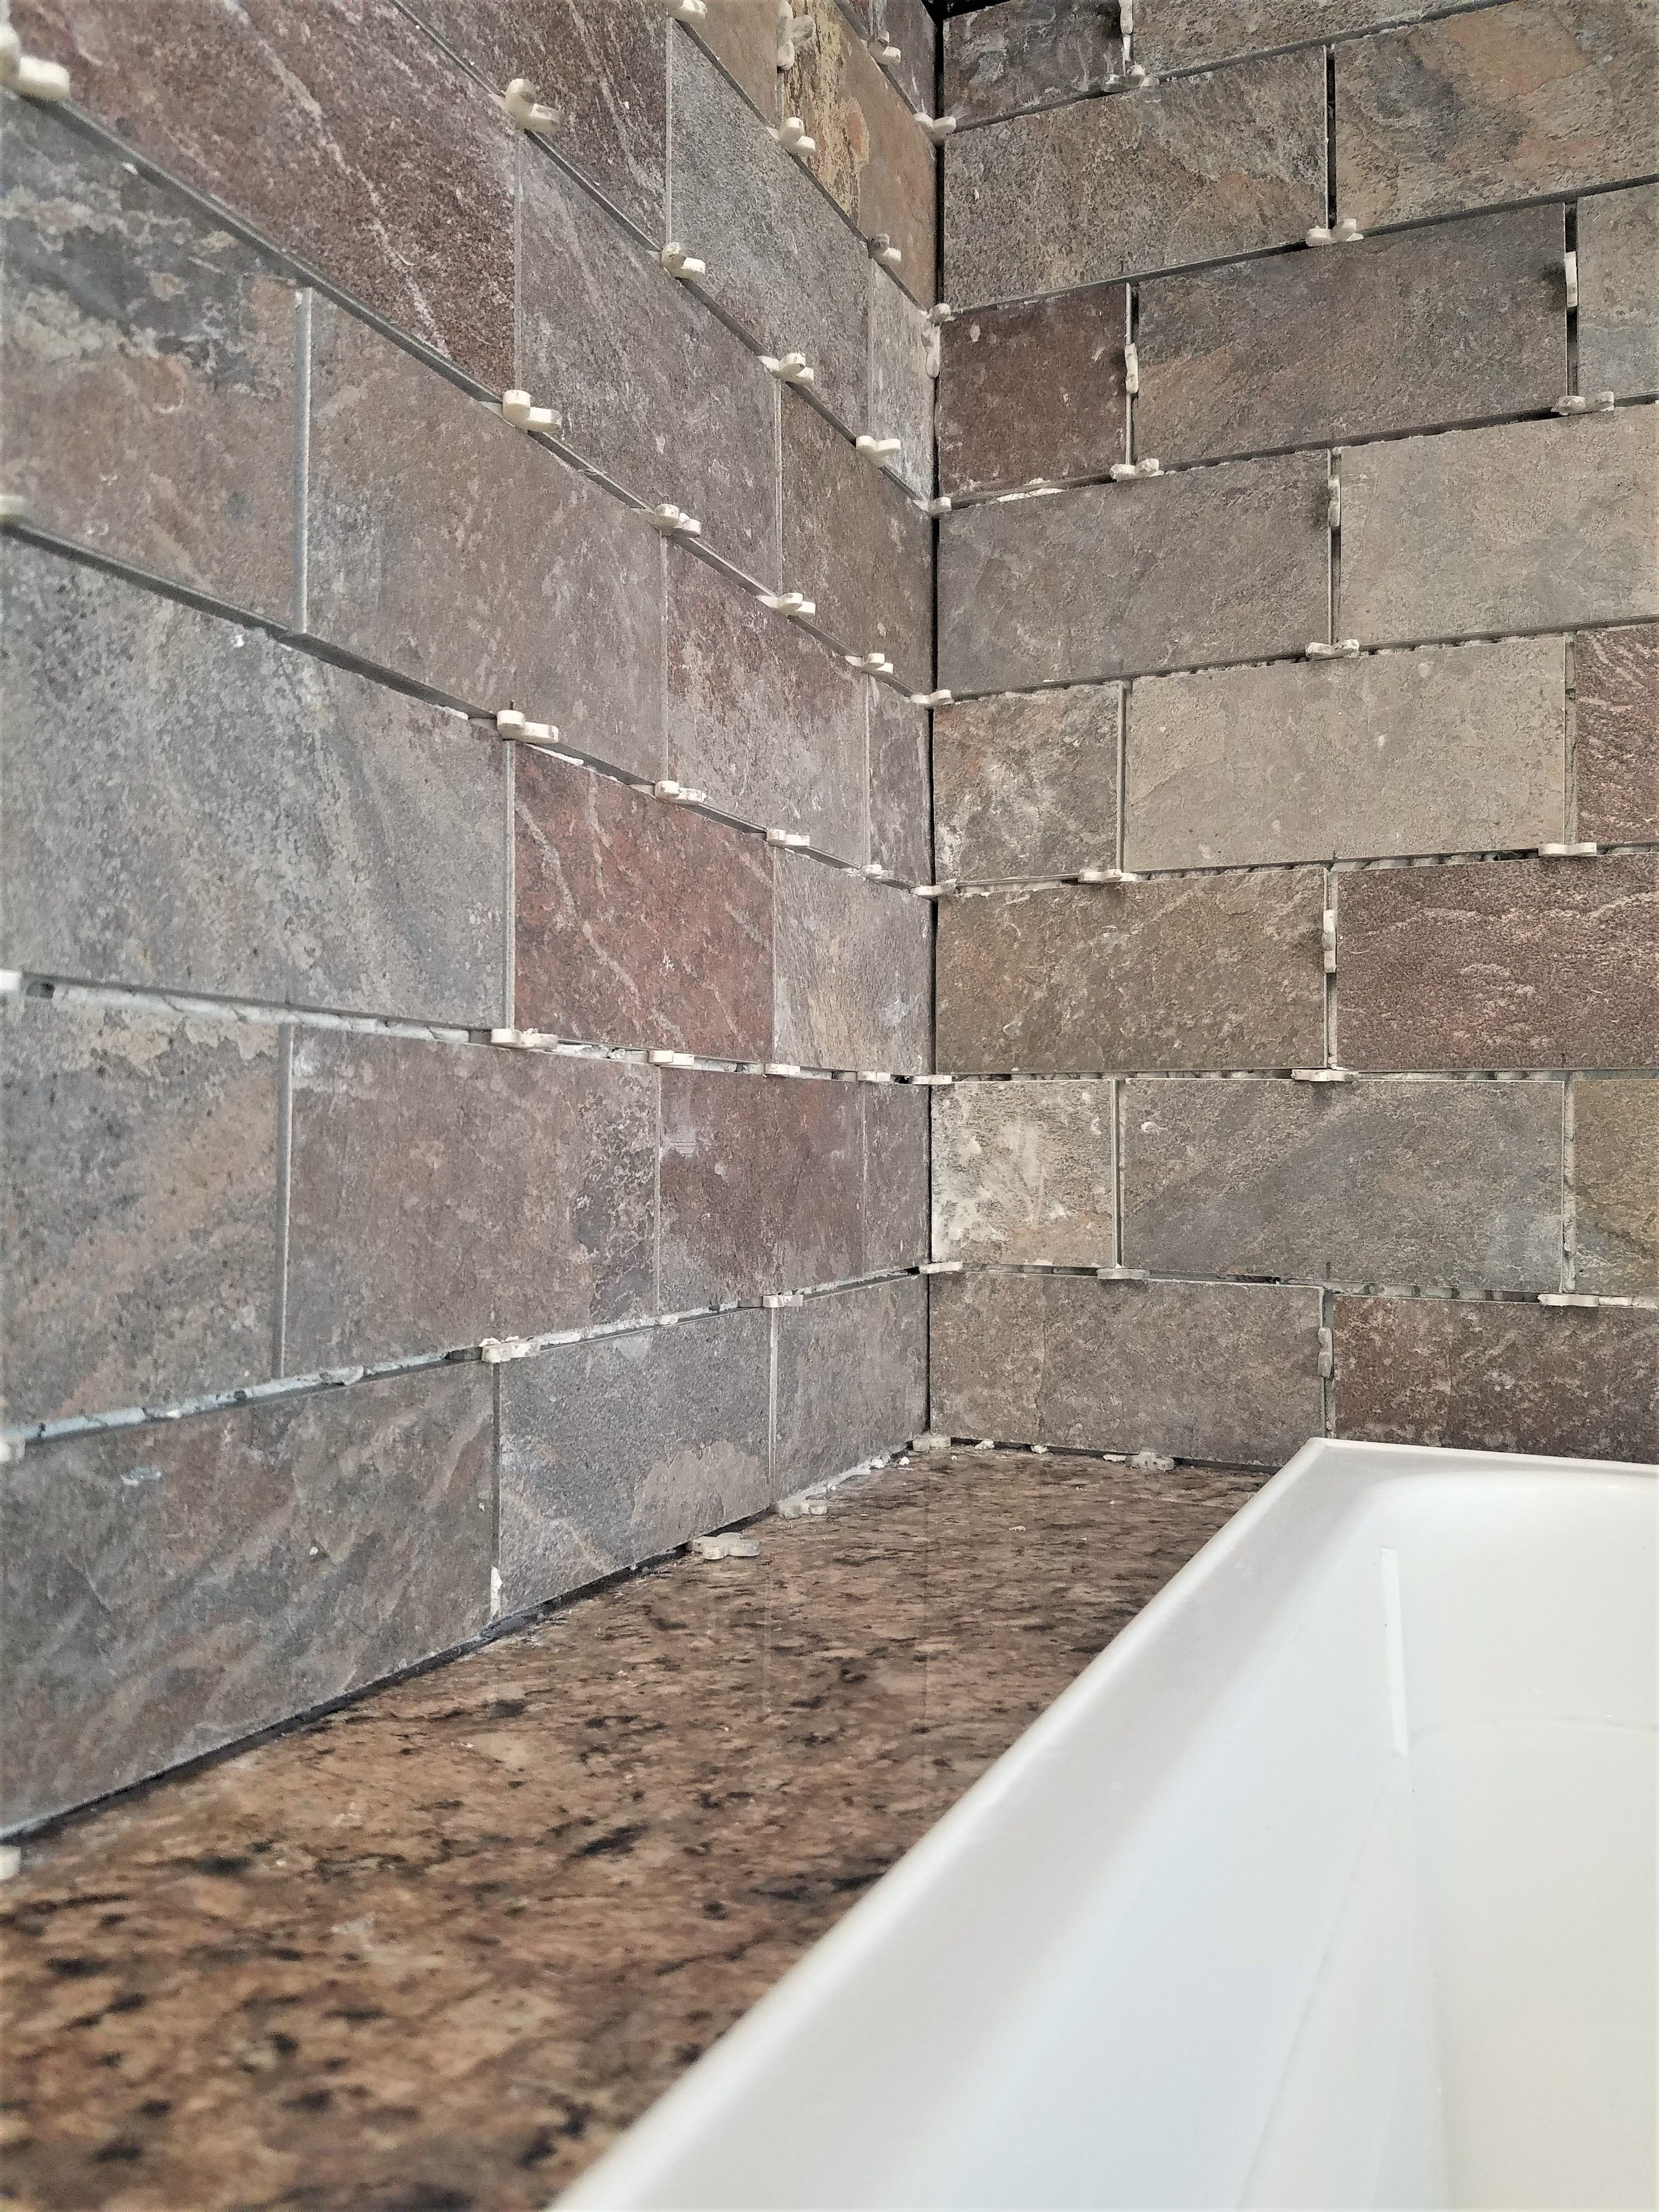 Video tutorial how to install a tile backsplash over drywall video tutorial how to install a tile backsplash over drywall fast and easy with dailygadgetfo Images